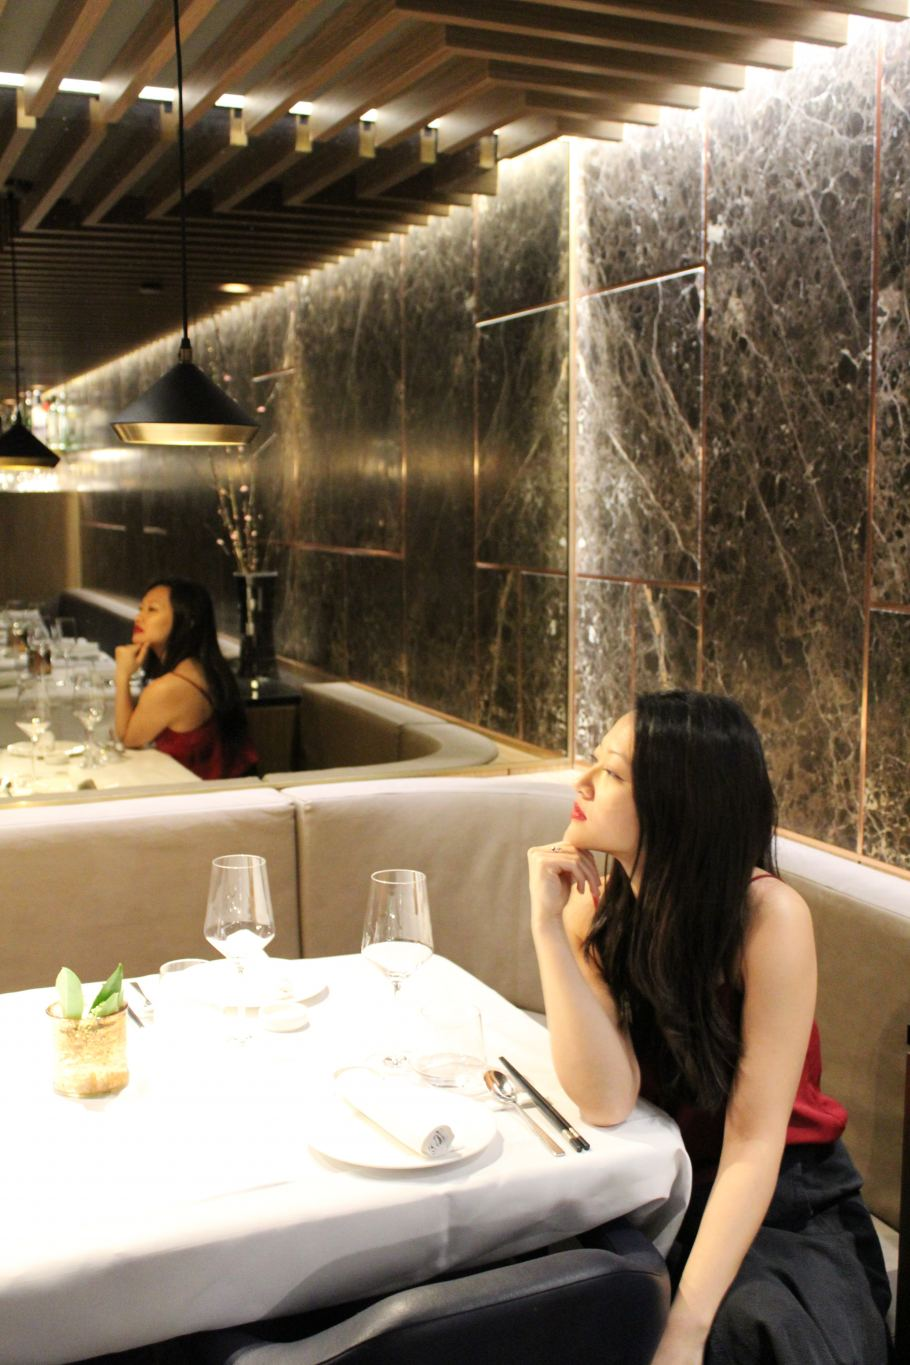 Best-Chinese-Restaurants-London-How-I-Learnt-to-Love-My-Chinese-Hertiage-The-Wong-Blog-Monica-Food